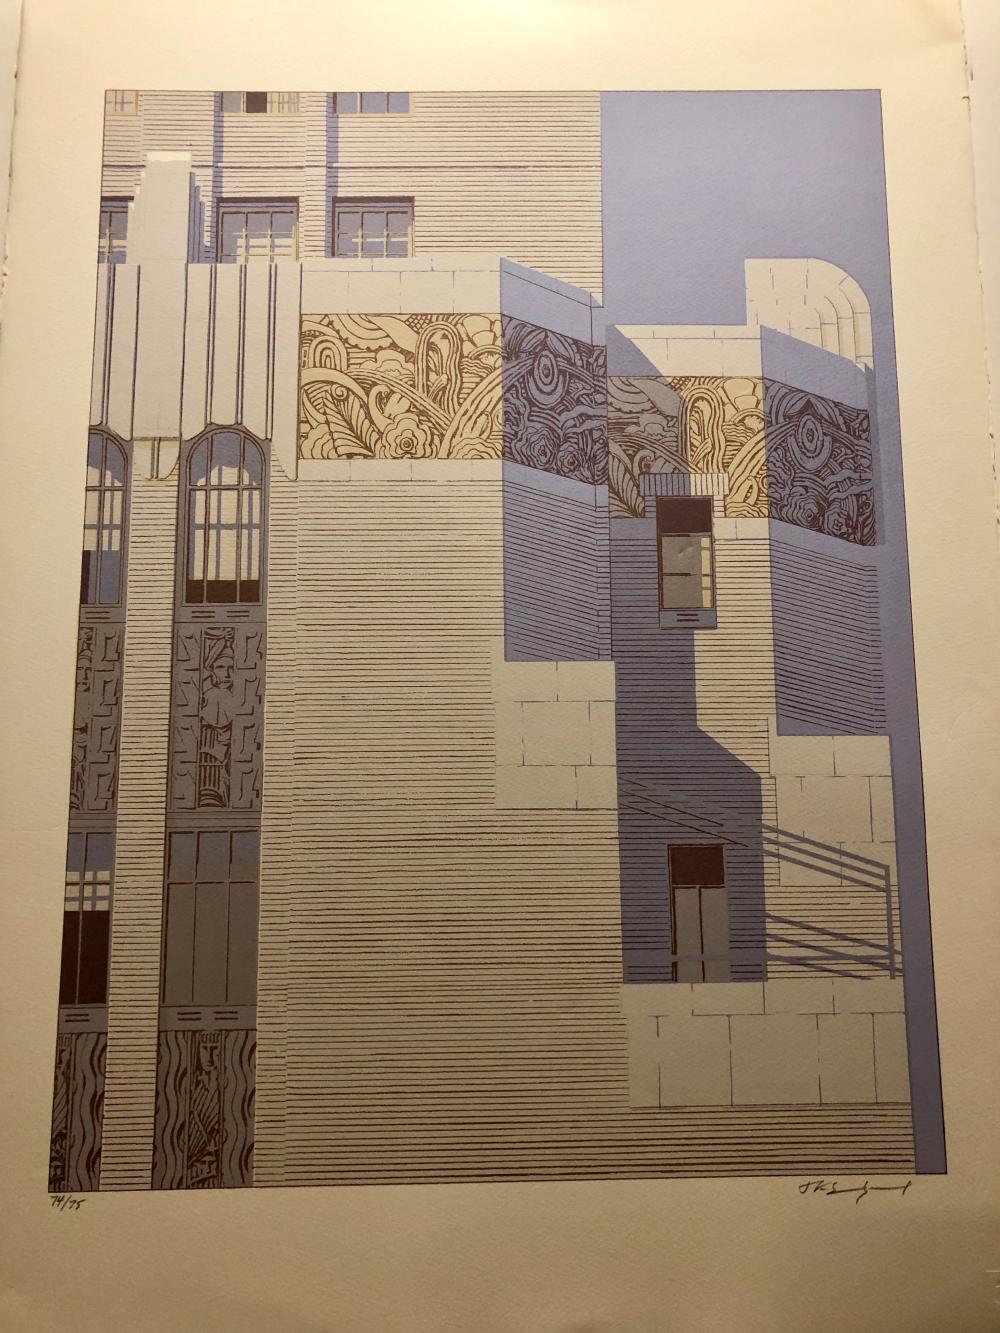 Exquisite print ~Barbizon Plaza ~Gotham IV  Midtown NYC serigraph JK sundquist